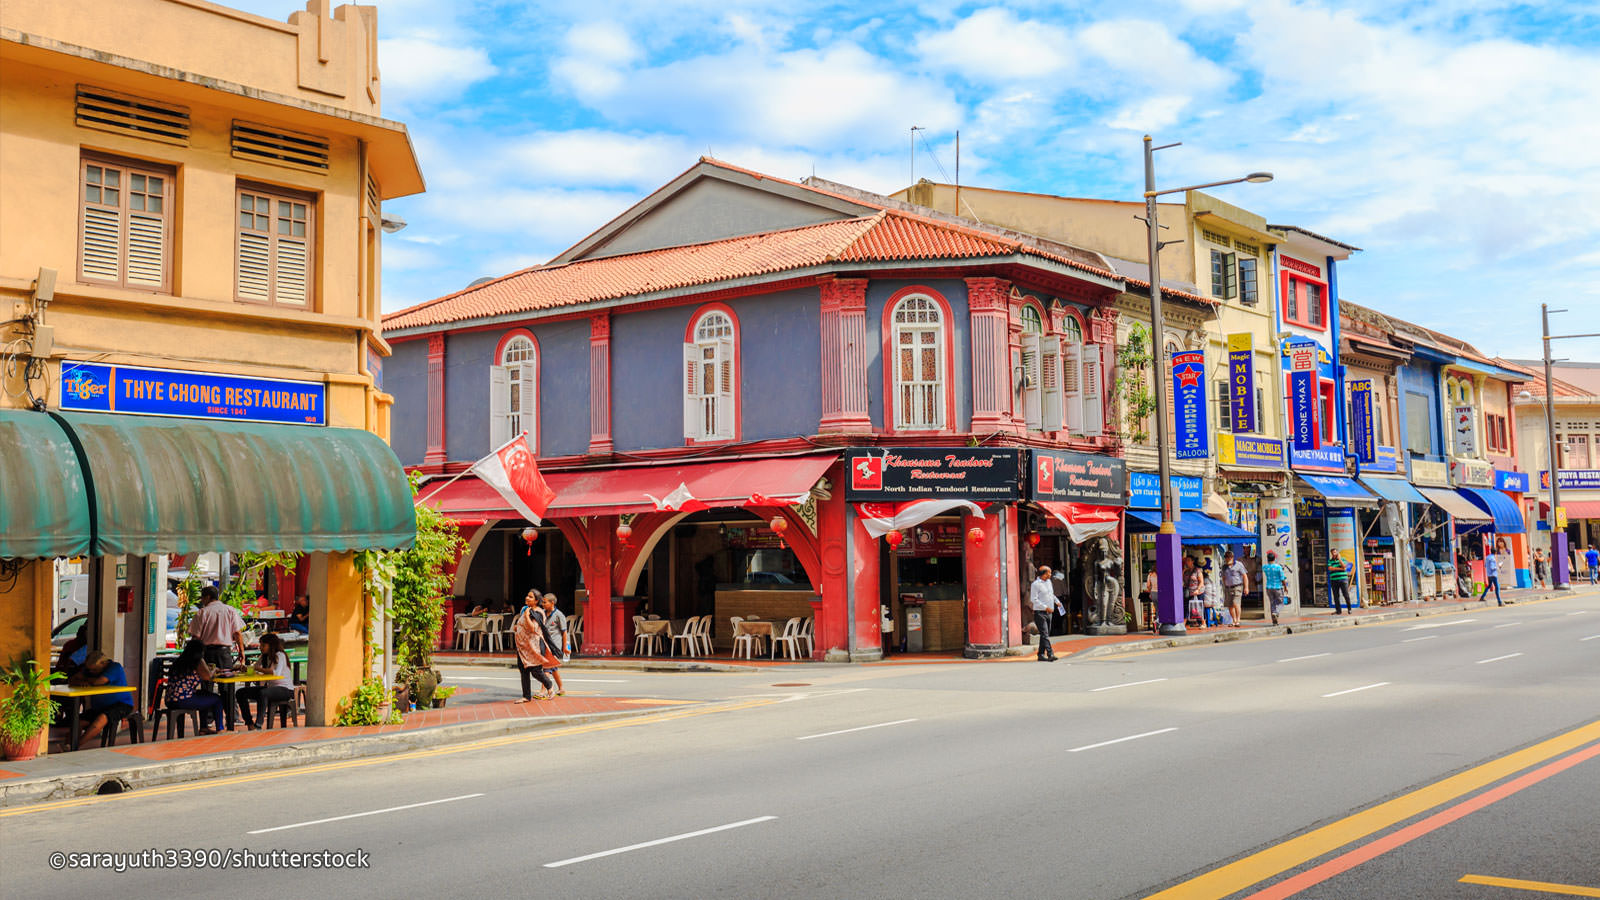 Little India Arcade Malaysia, Singapore & Brunei, Little India Restaurants - Where and What to Eat in Little India